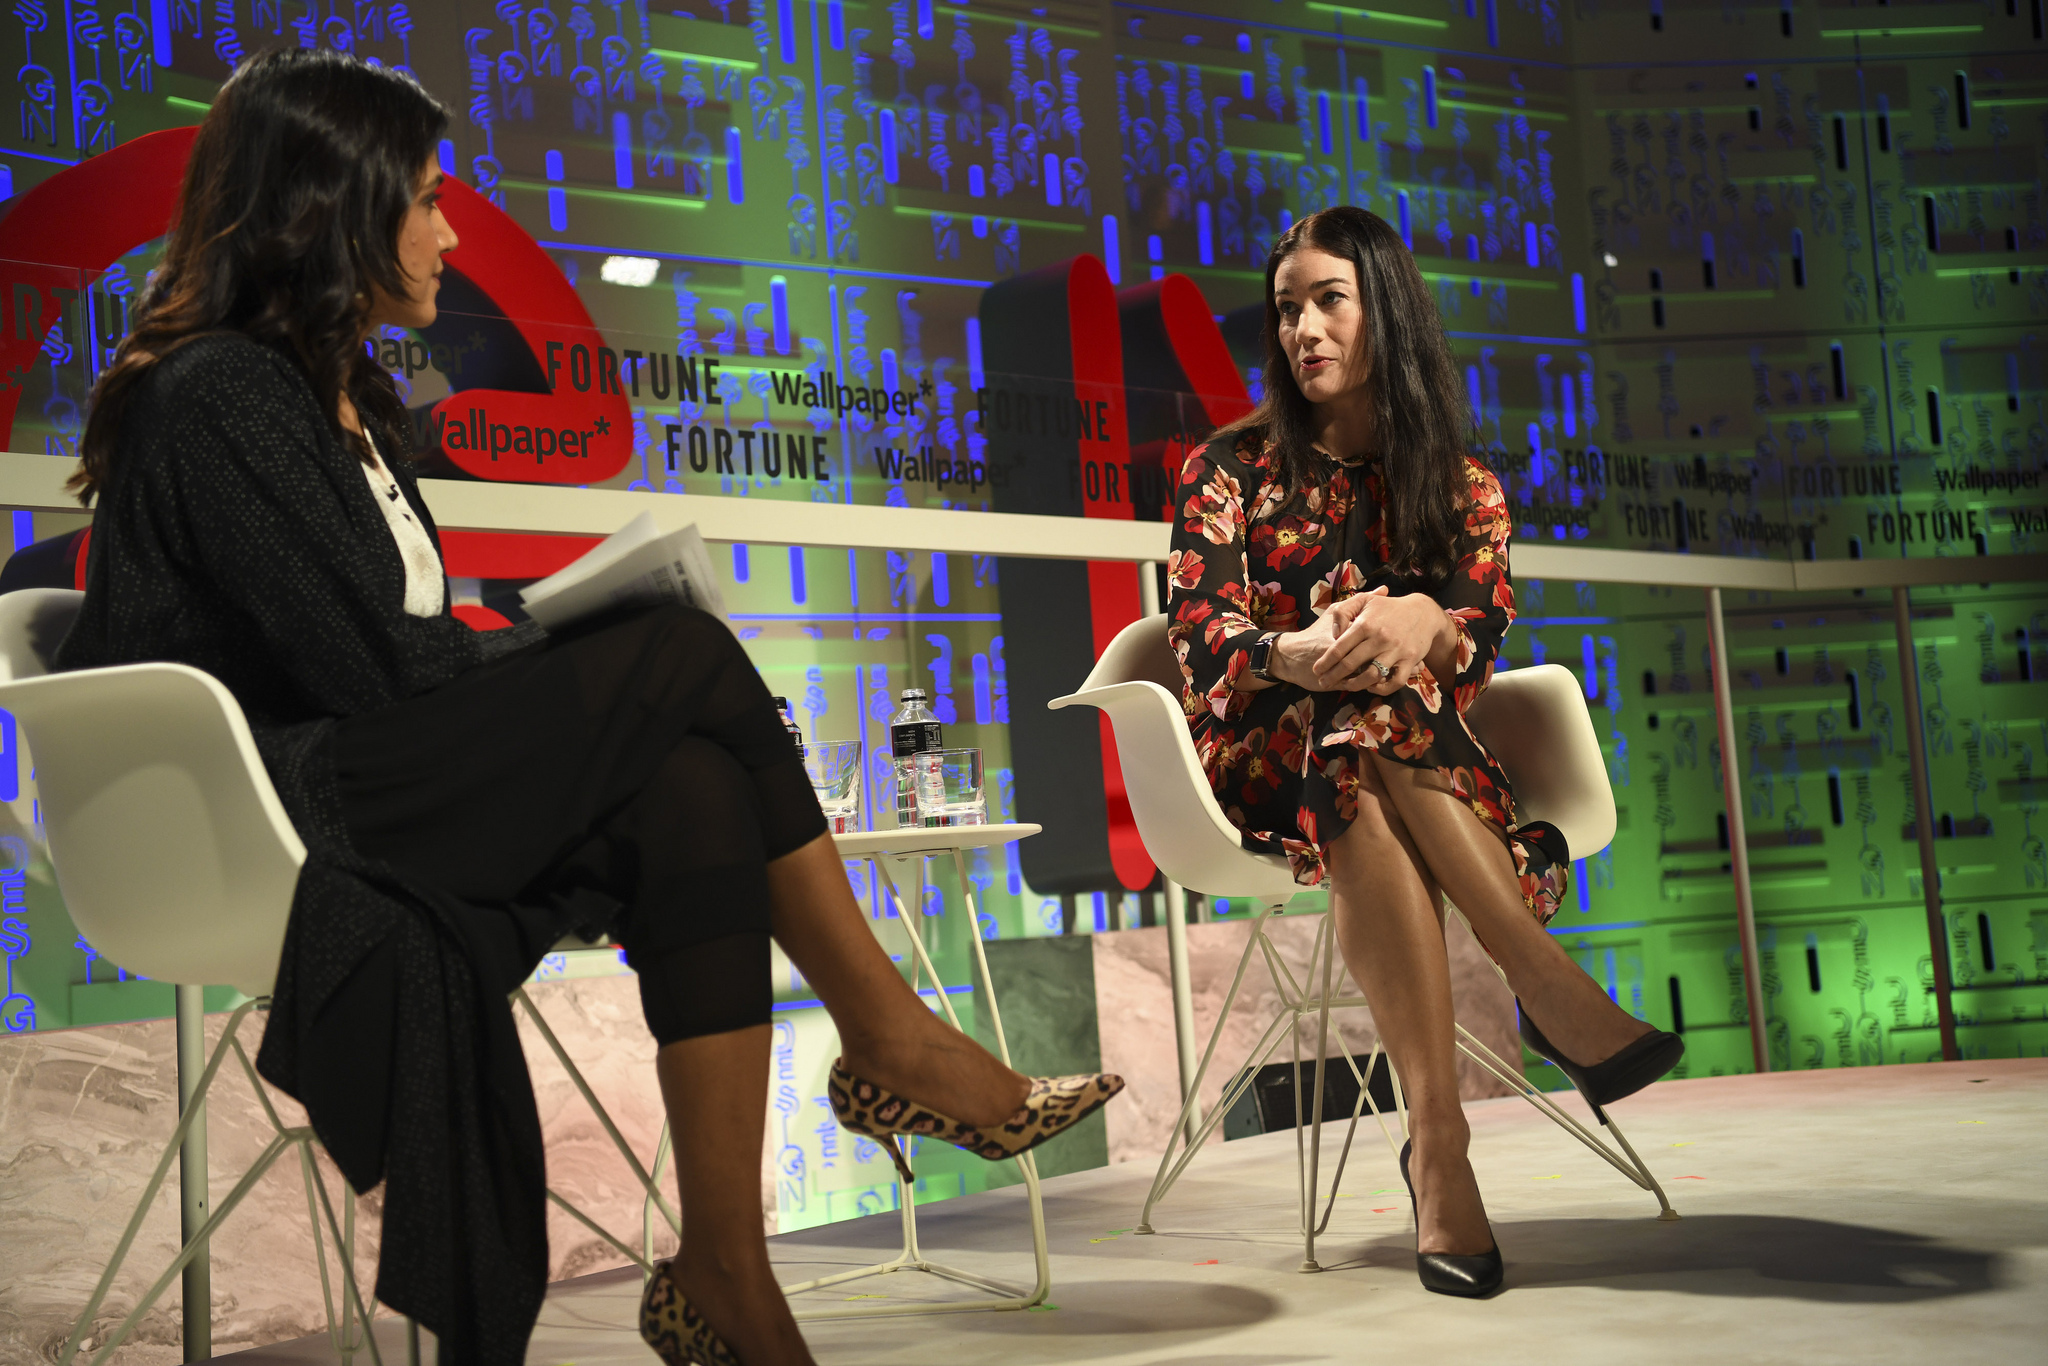 Airbnb transportation director Jenny Arden (right), with Fortune's Maithreyi Seetharaman, at the 2019 Fortune Brainstorm Design conference in Singapore.